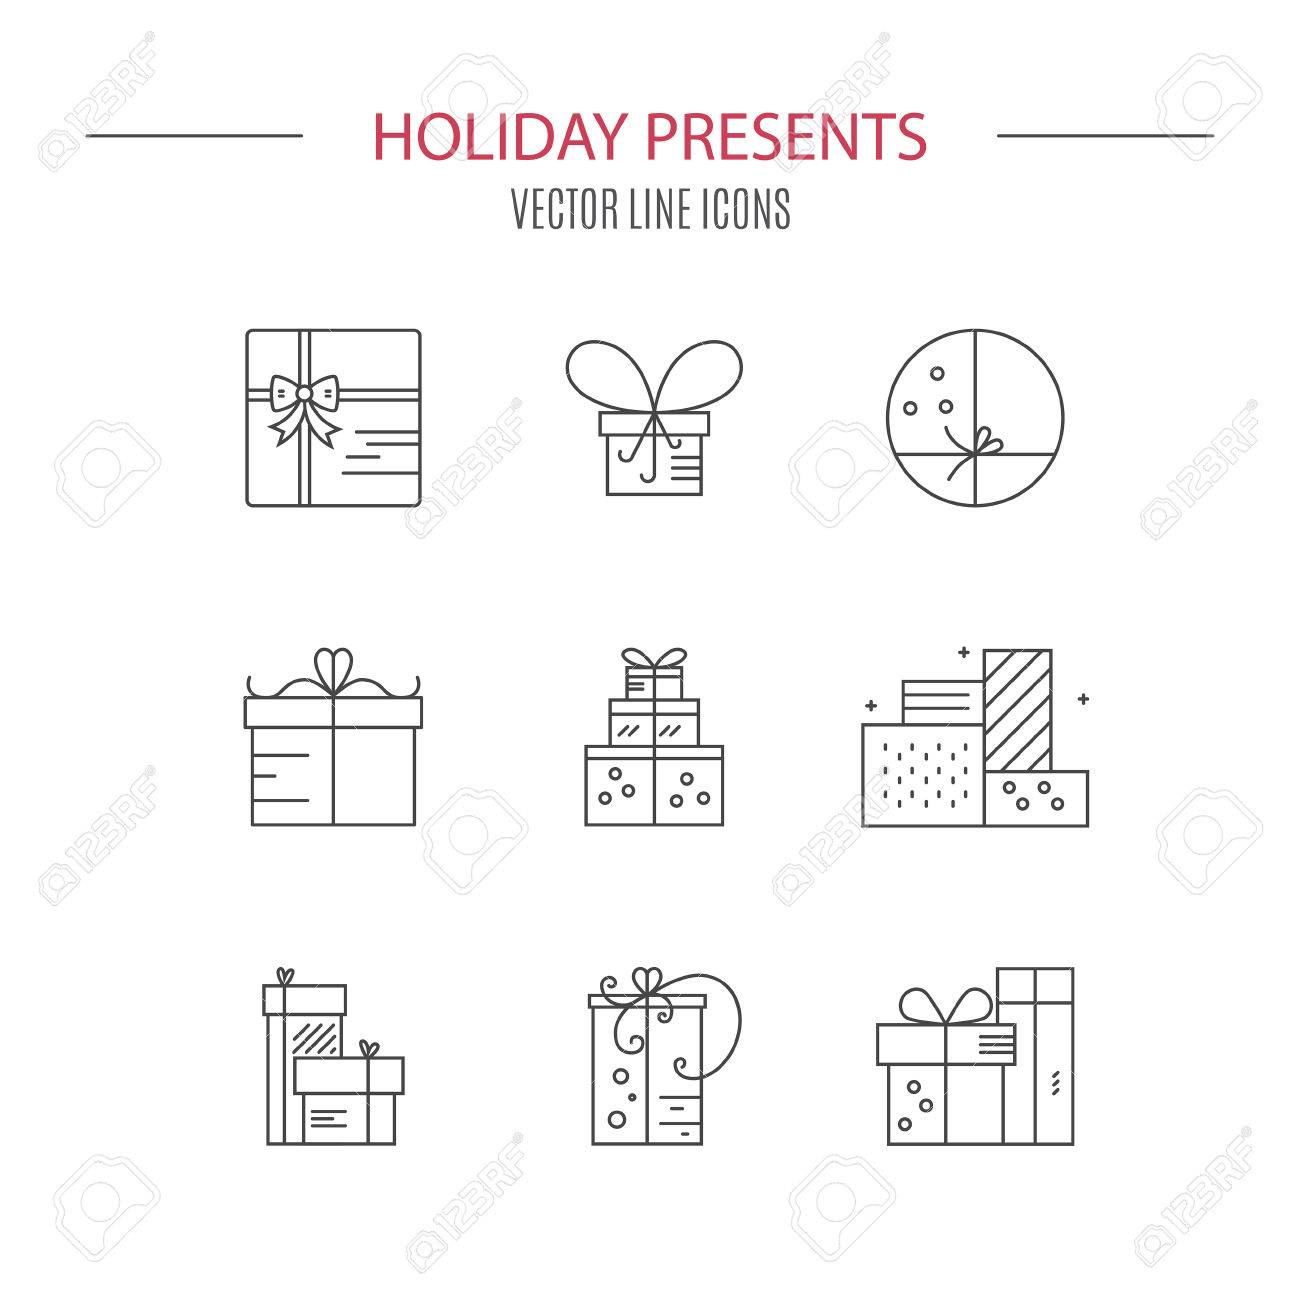 Gift box symbols vector collection design element for gift gift box symbols vector collection design element for gift shop symbol for holidays buycottarizona Gallery